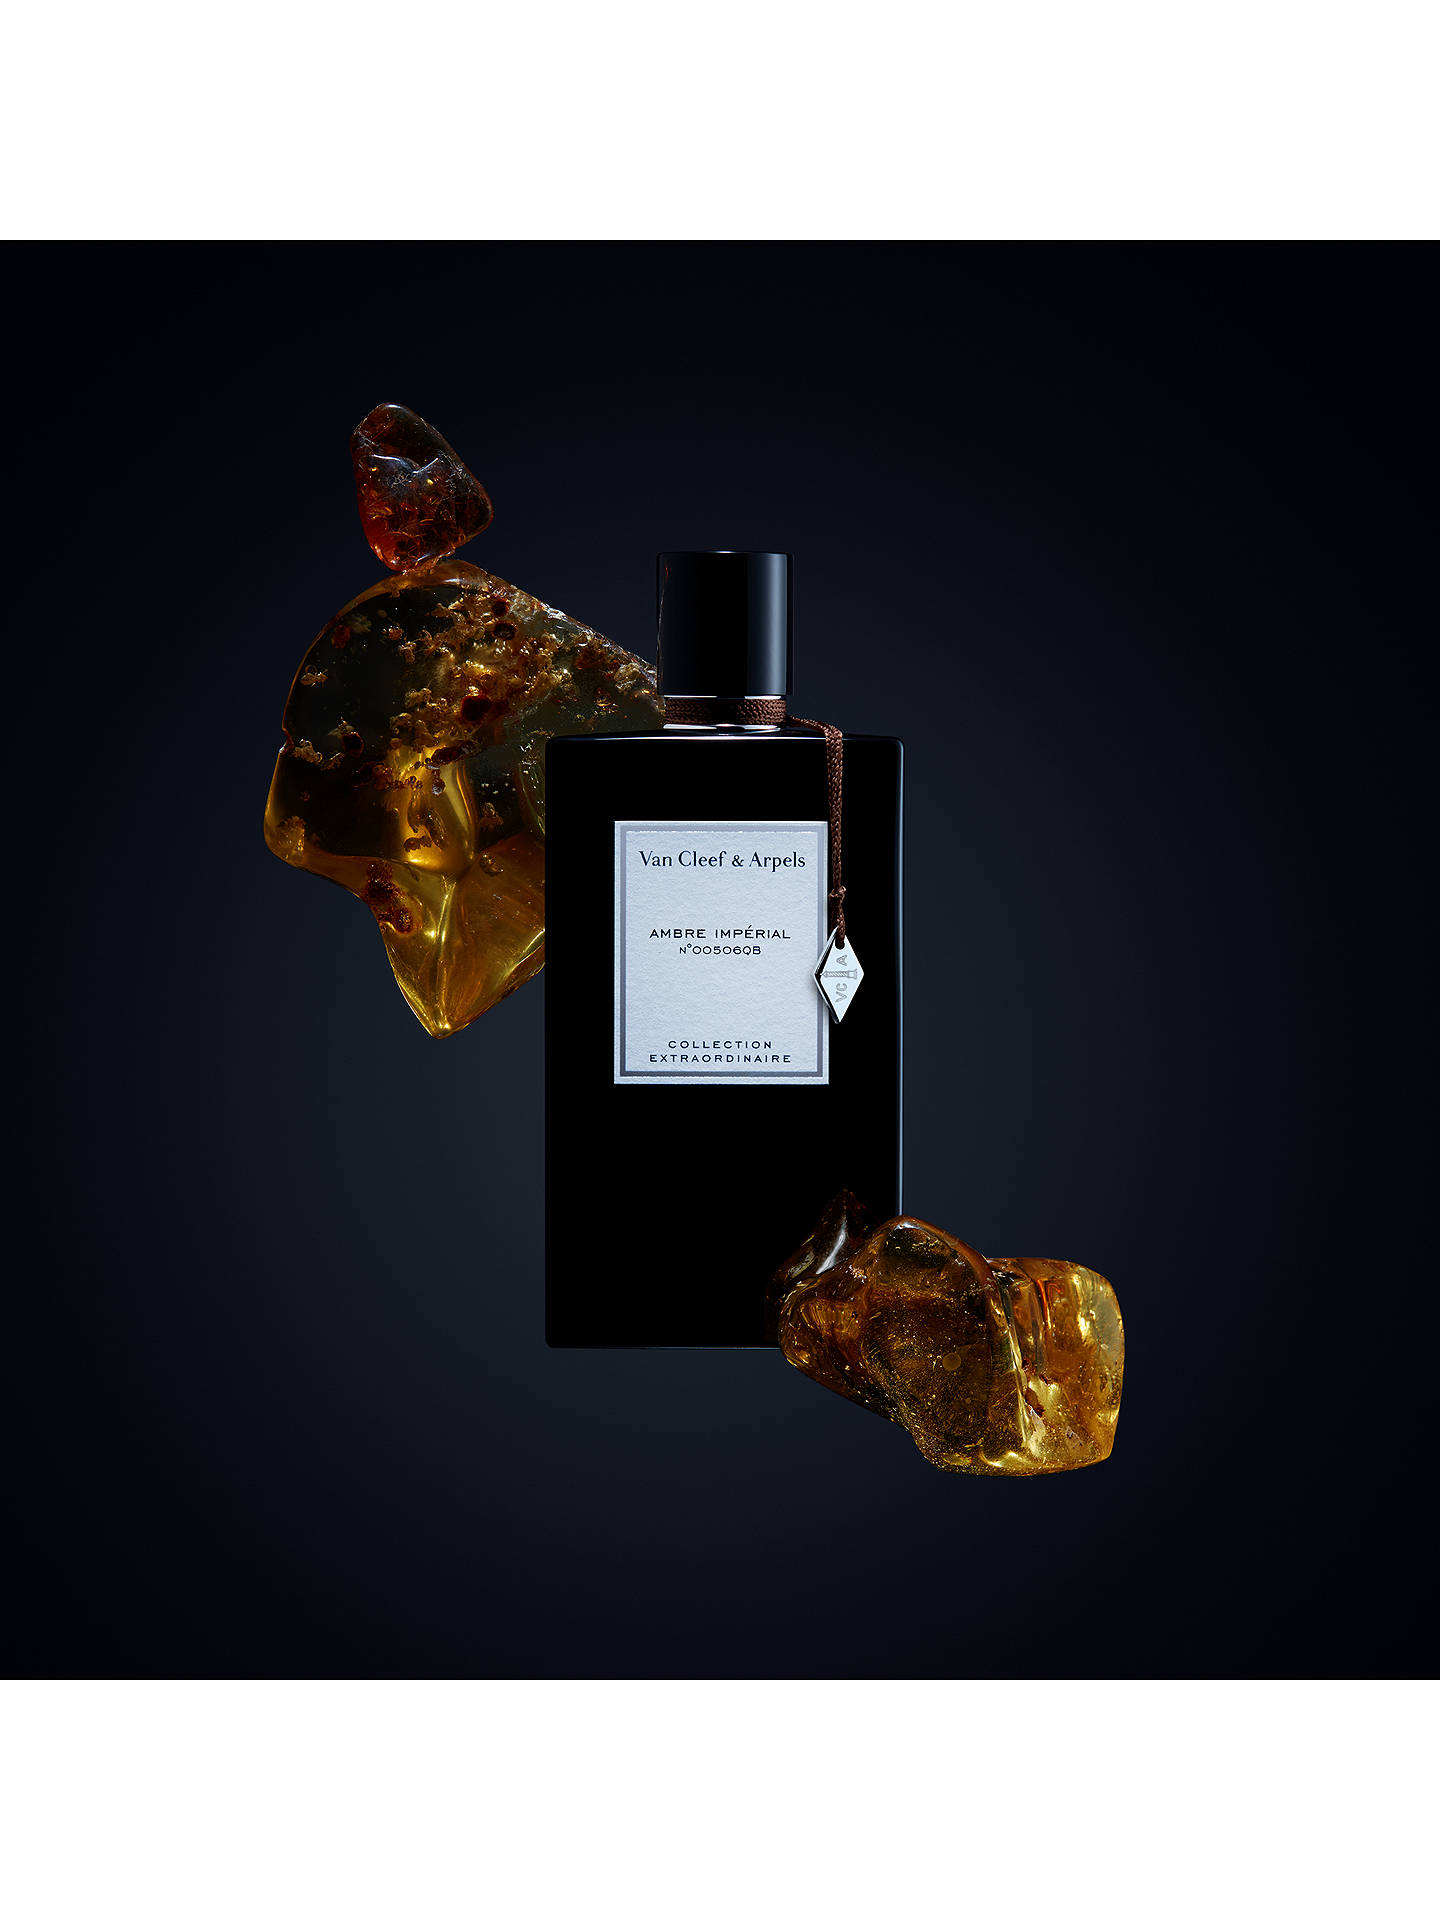 Buy Van Cleef & Arpels Collection Extraordinaire Ambre Impérial Eau de Parfum, 75ml Online at johnlewis.com